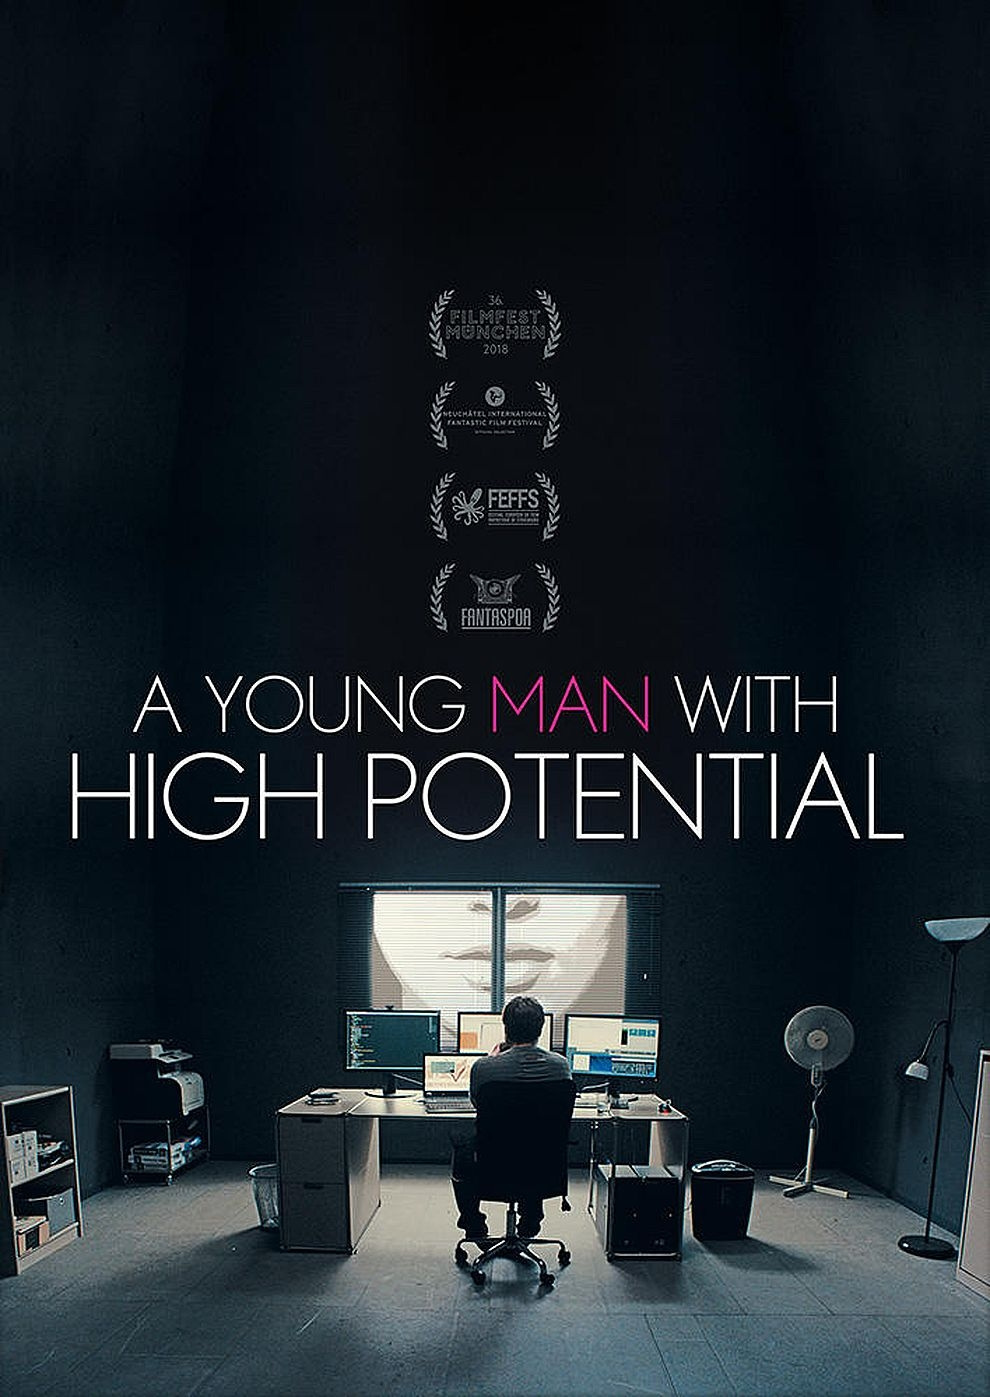 A Young Man with High Potential (Poster)